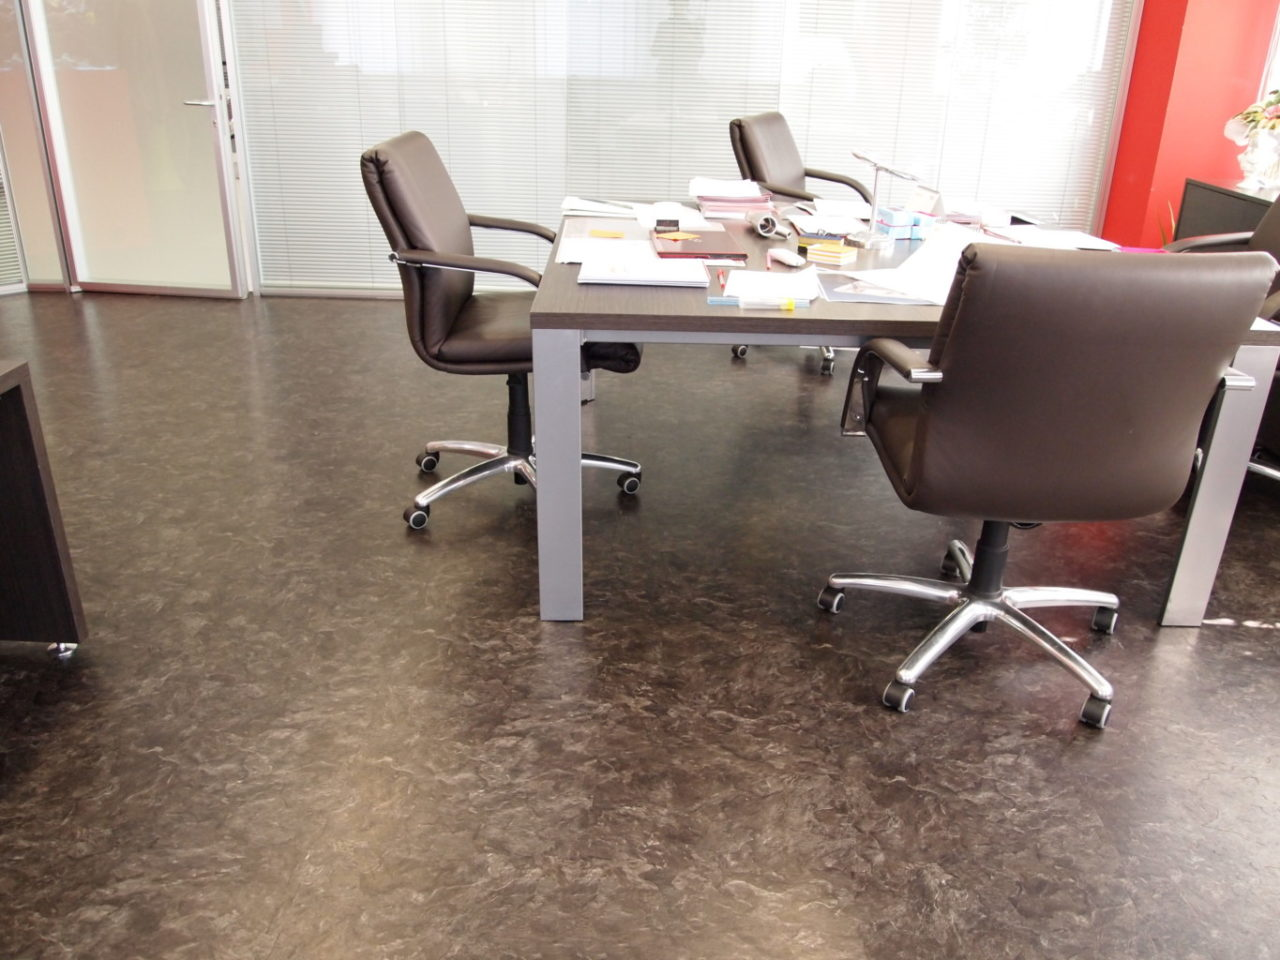 durable pvc home office chair. a flooring with logo or corporate design always makes an impression and there are no limitations the of printed office floorings. durable pvc home chair